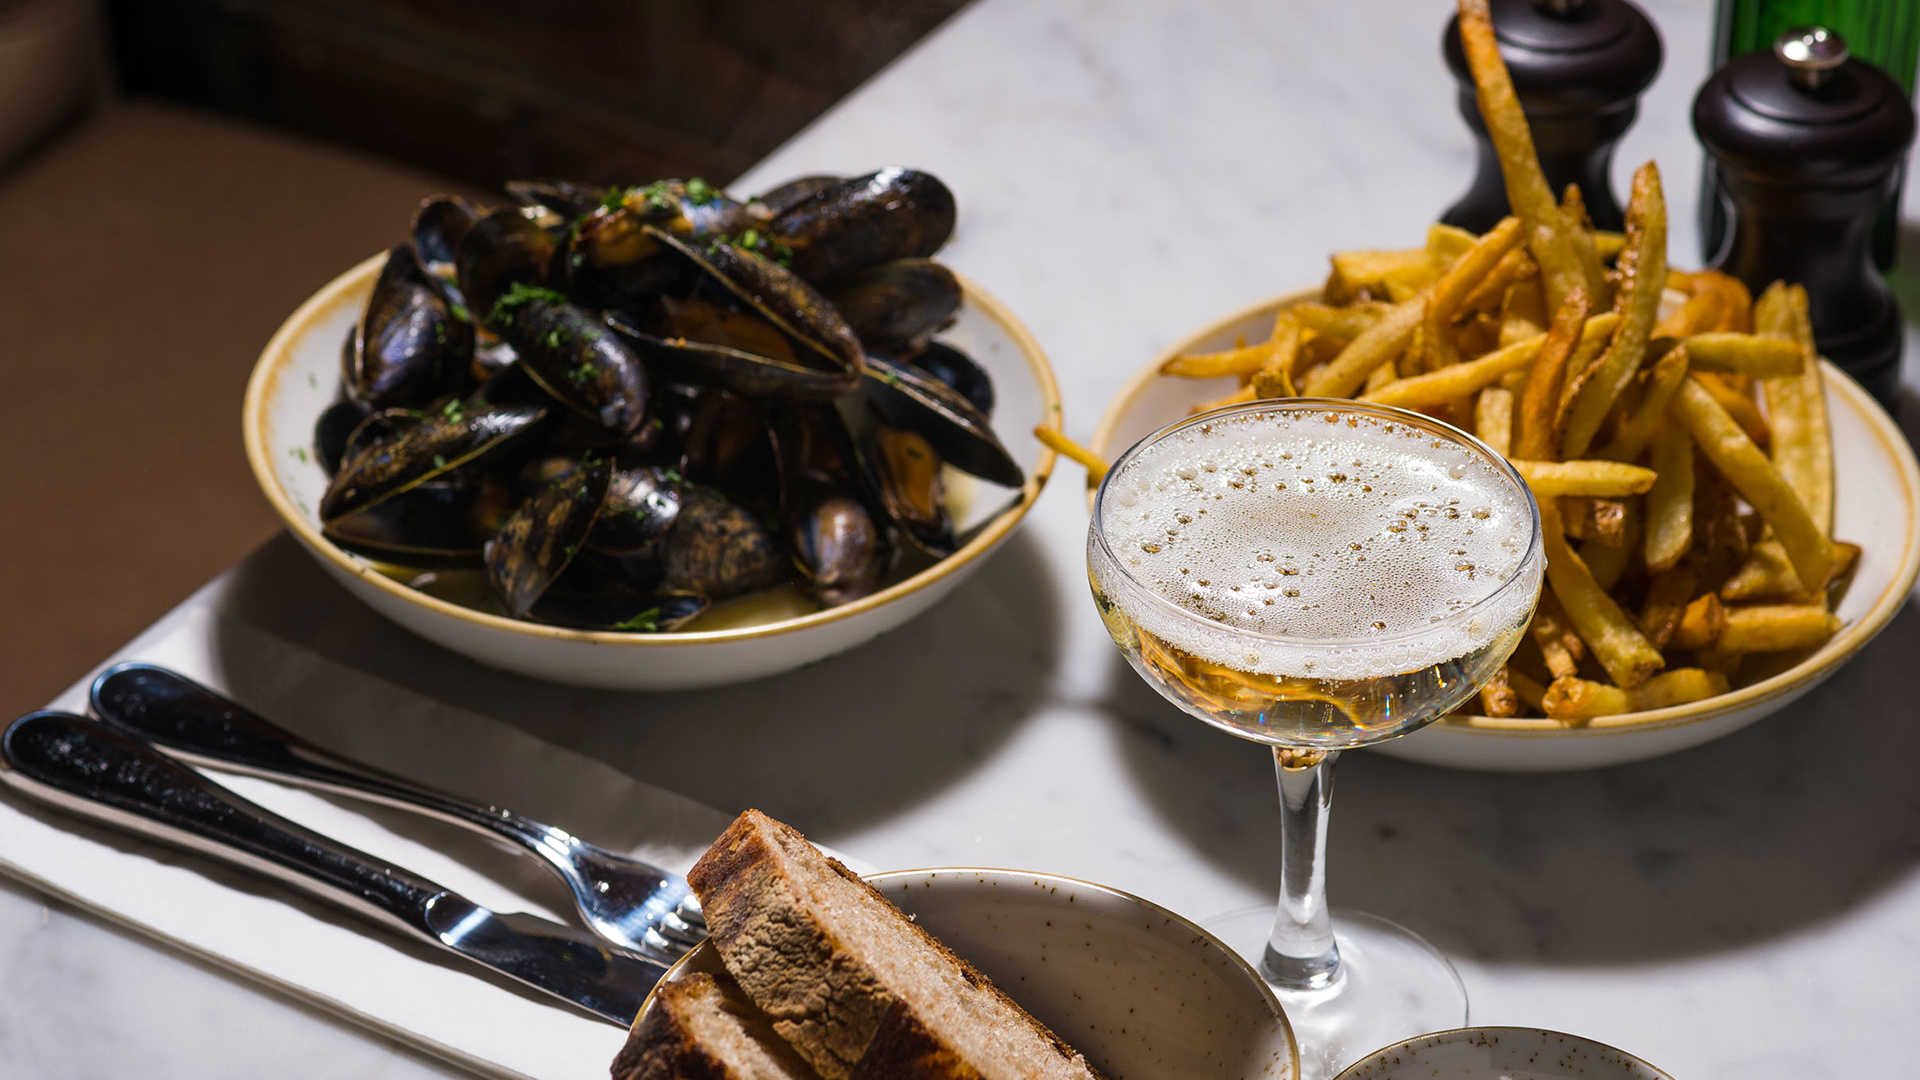 Moules marinière at Petit Pois. Photography by Addie Chinn